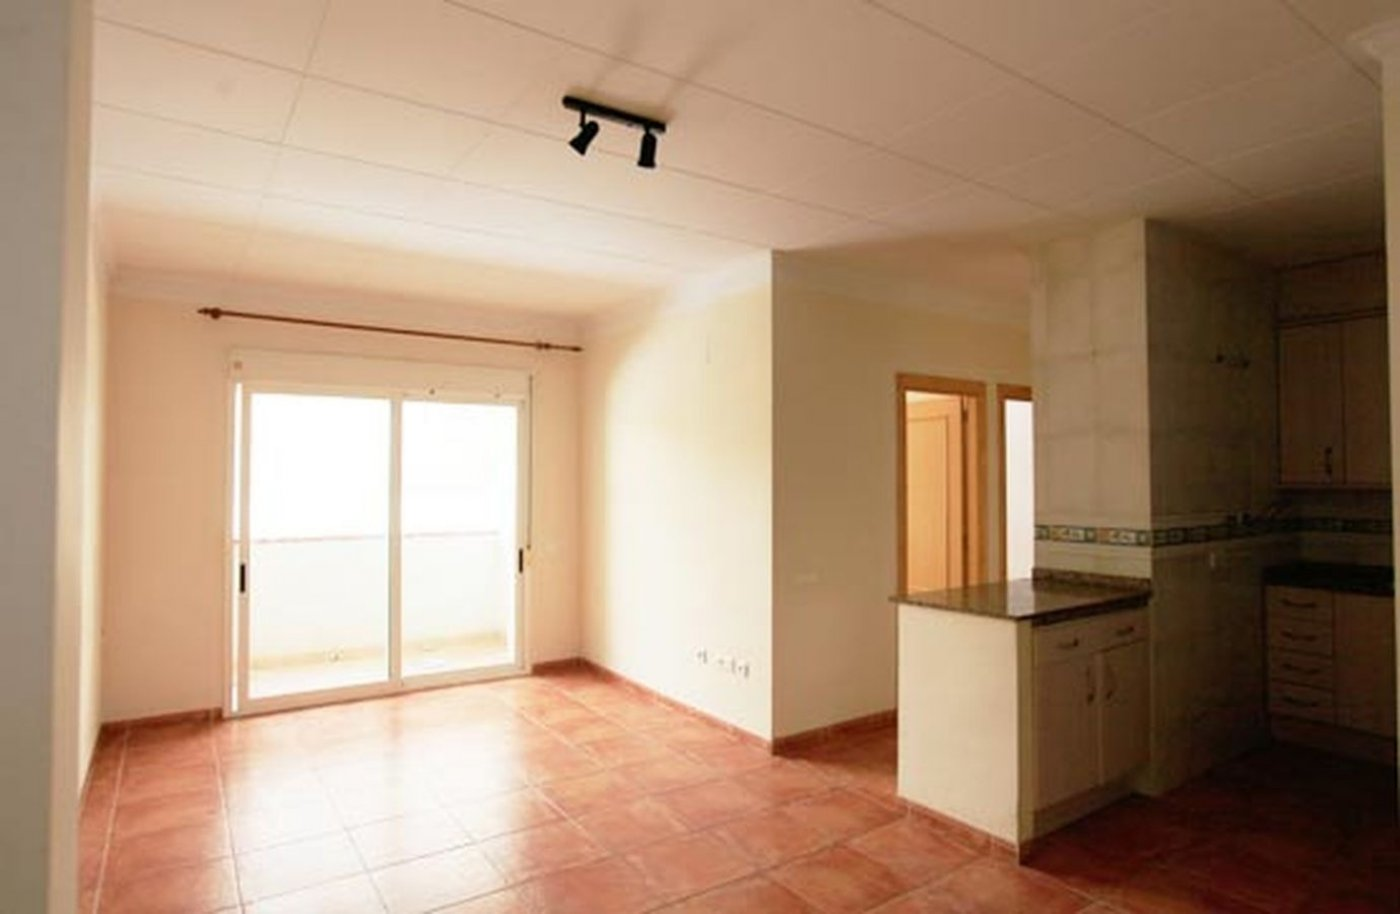 Flat for sale in Les Cases d